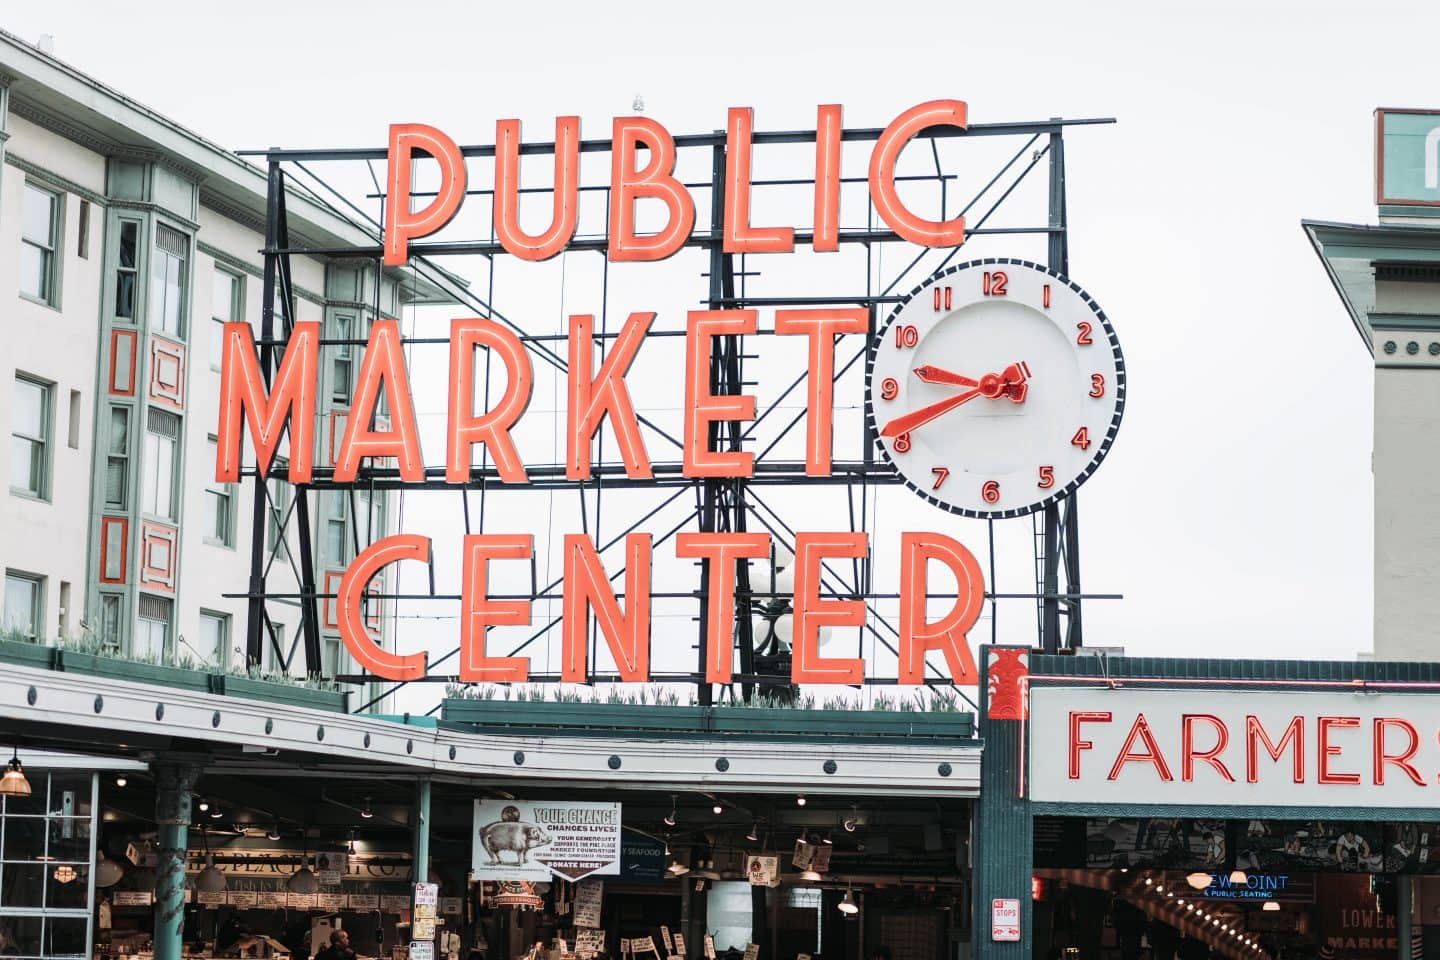 30 things to know about Pike Place Market in Seattle